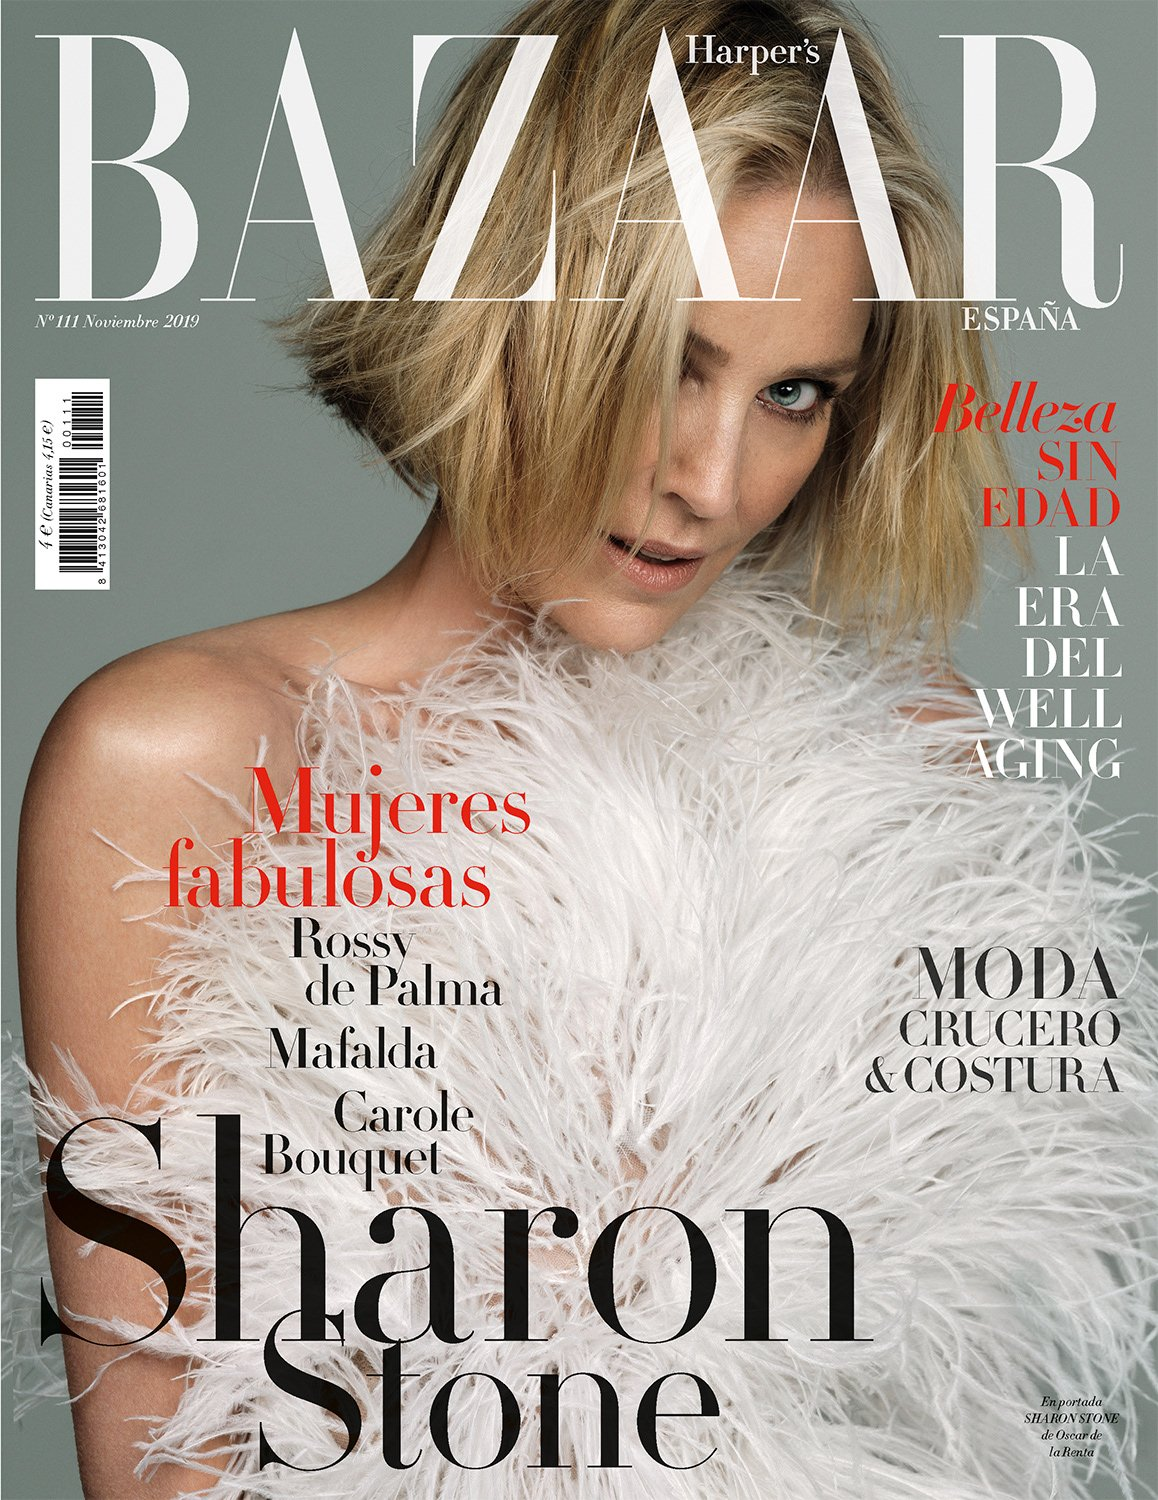 4900e587234829.5db199014badc 20 Things You Probably Didn't Know About Sharon Stone